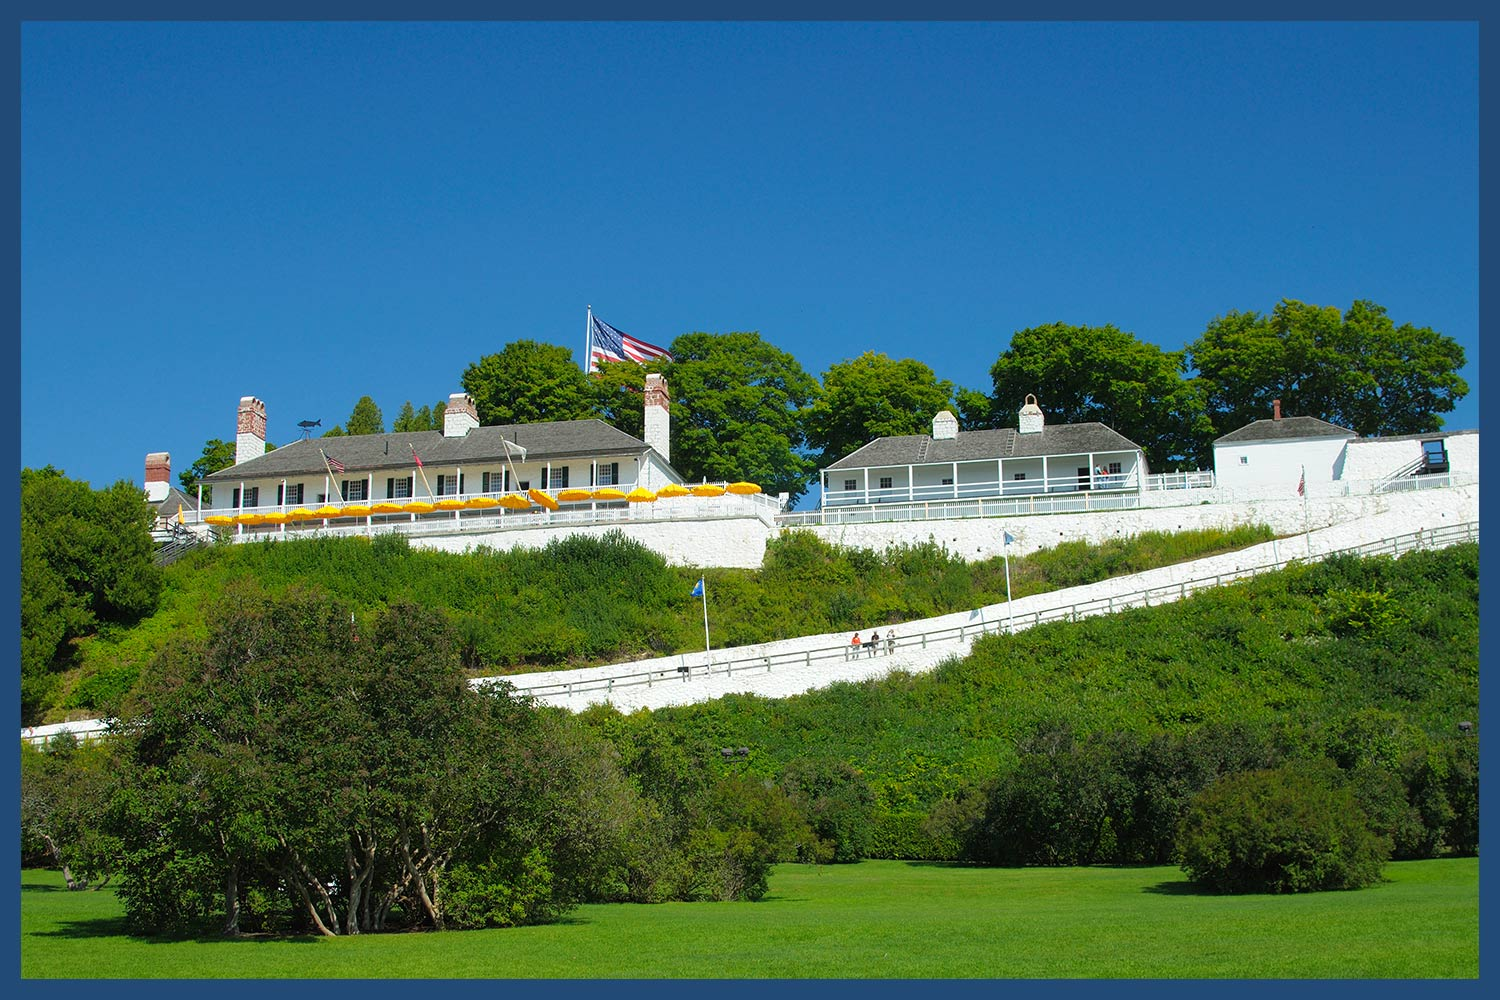 Fort Mackinac in Michigan